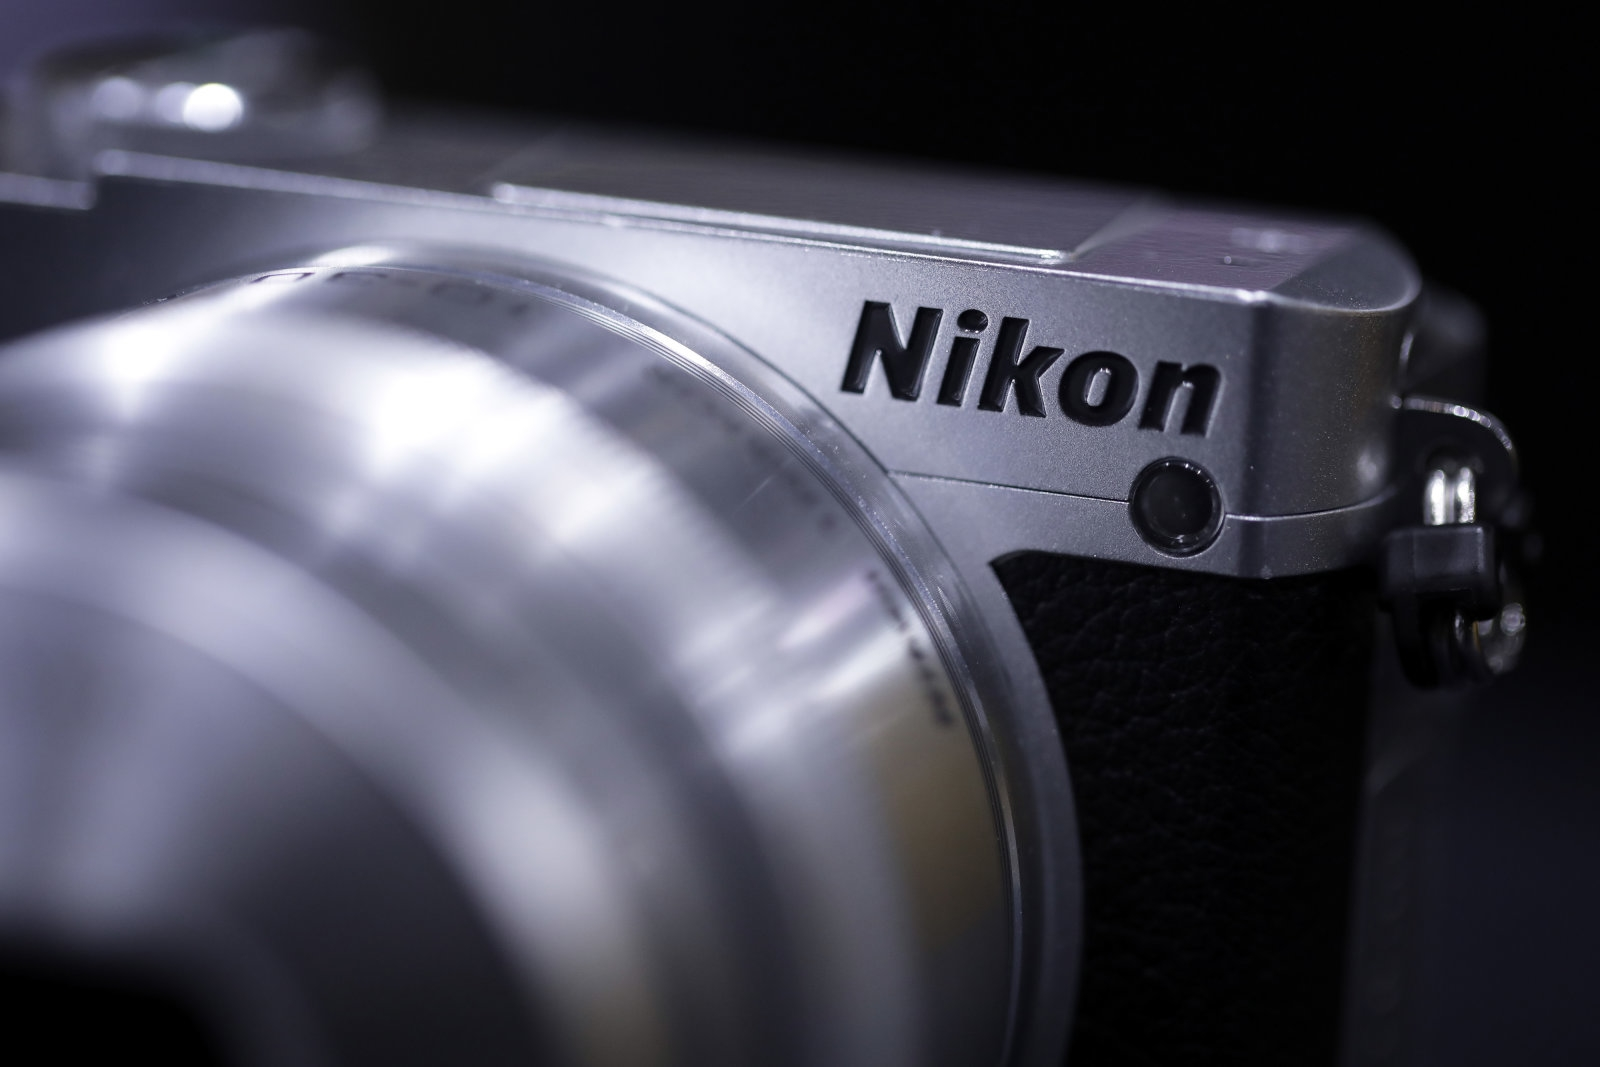 Nikon is making a full-frame mirrorless camera | DeviceDaily.com